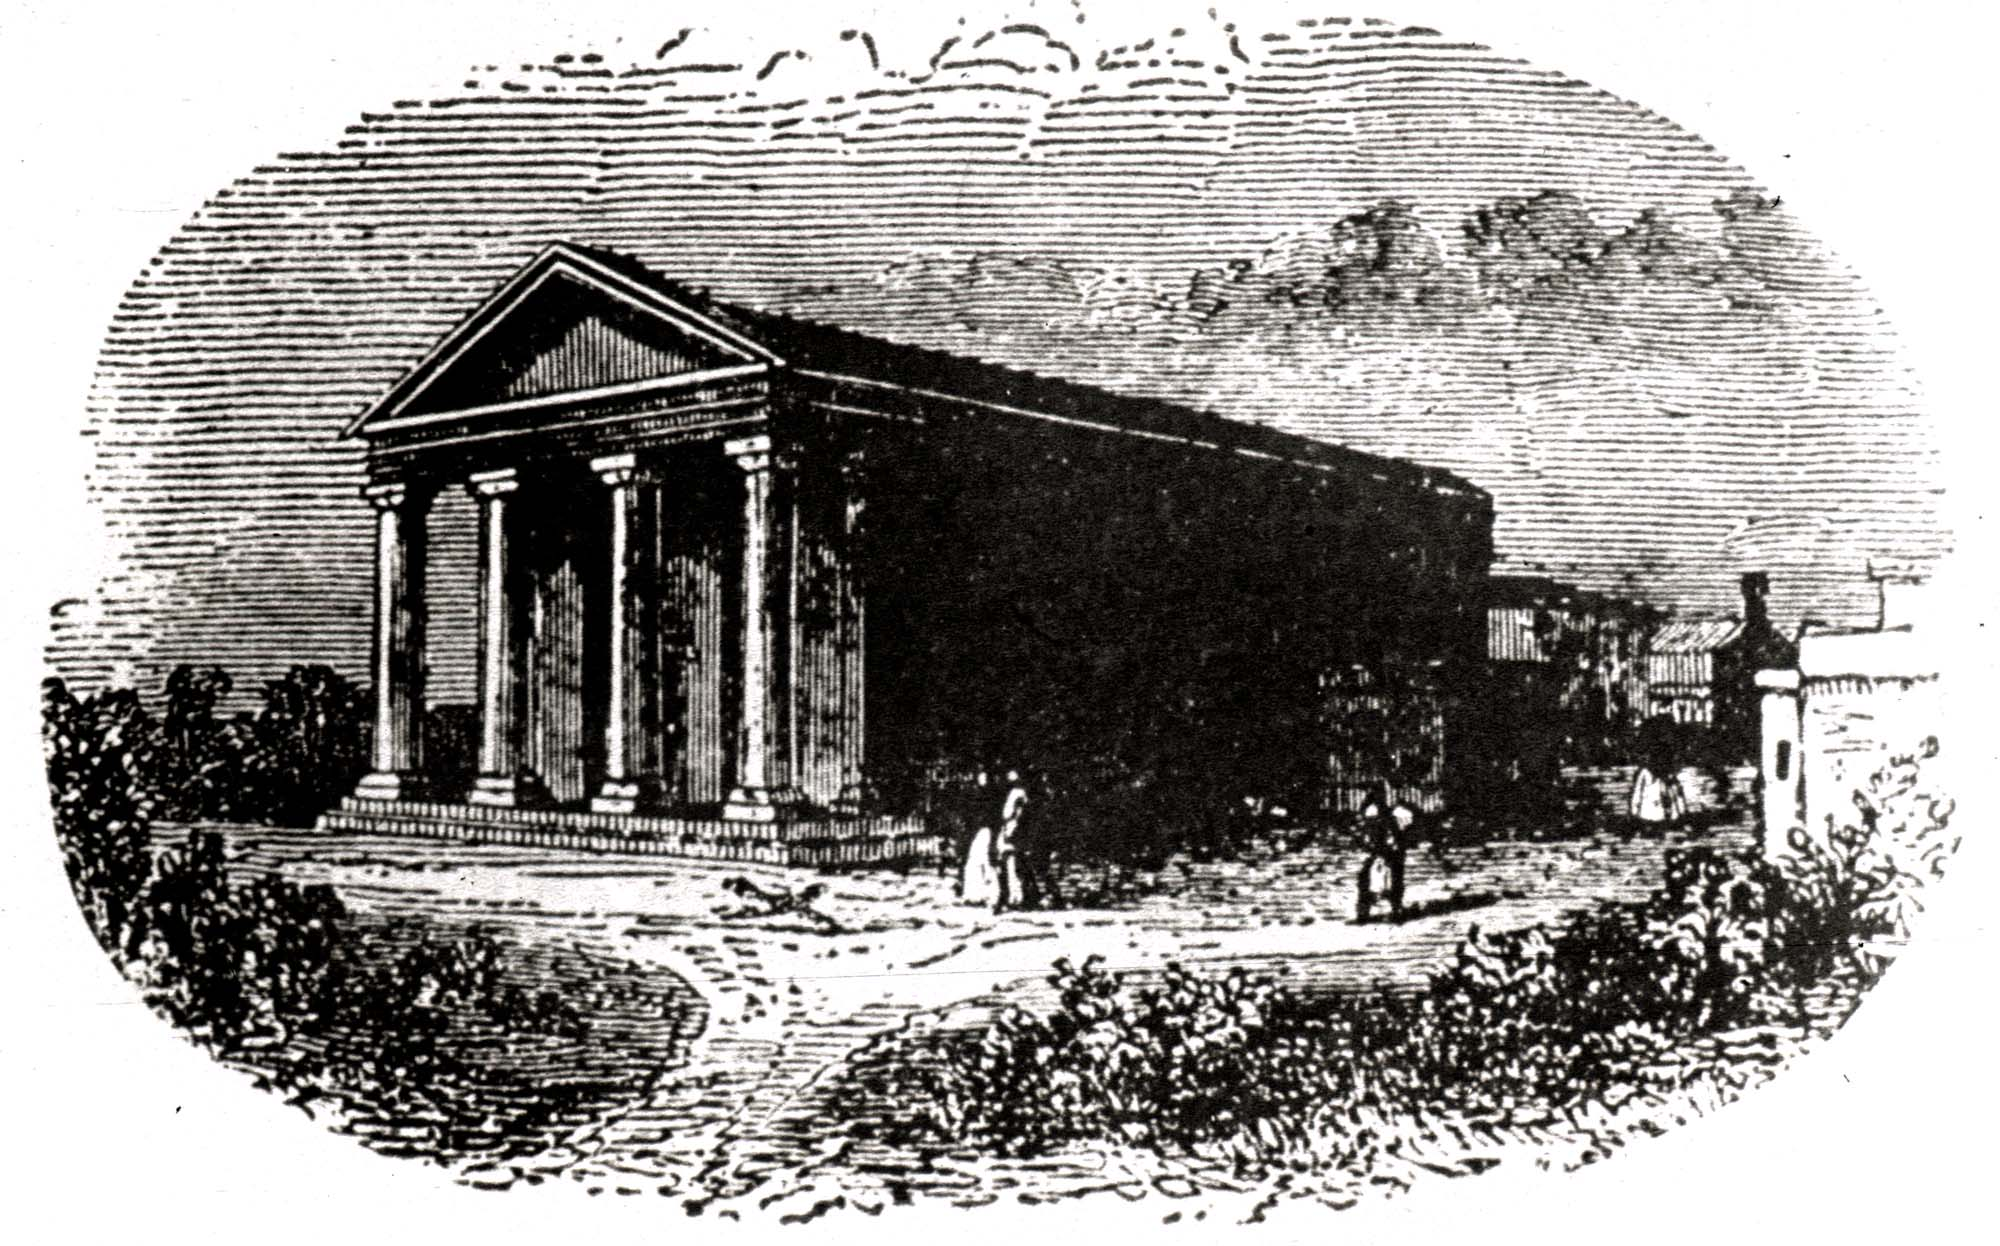 The Proprietary School Building in 1840 before the various additions and extensions -